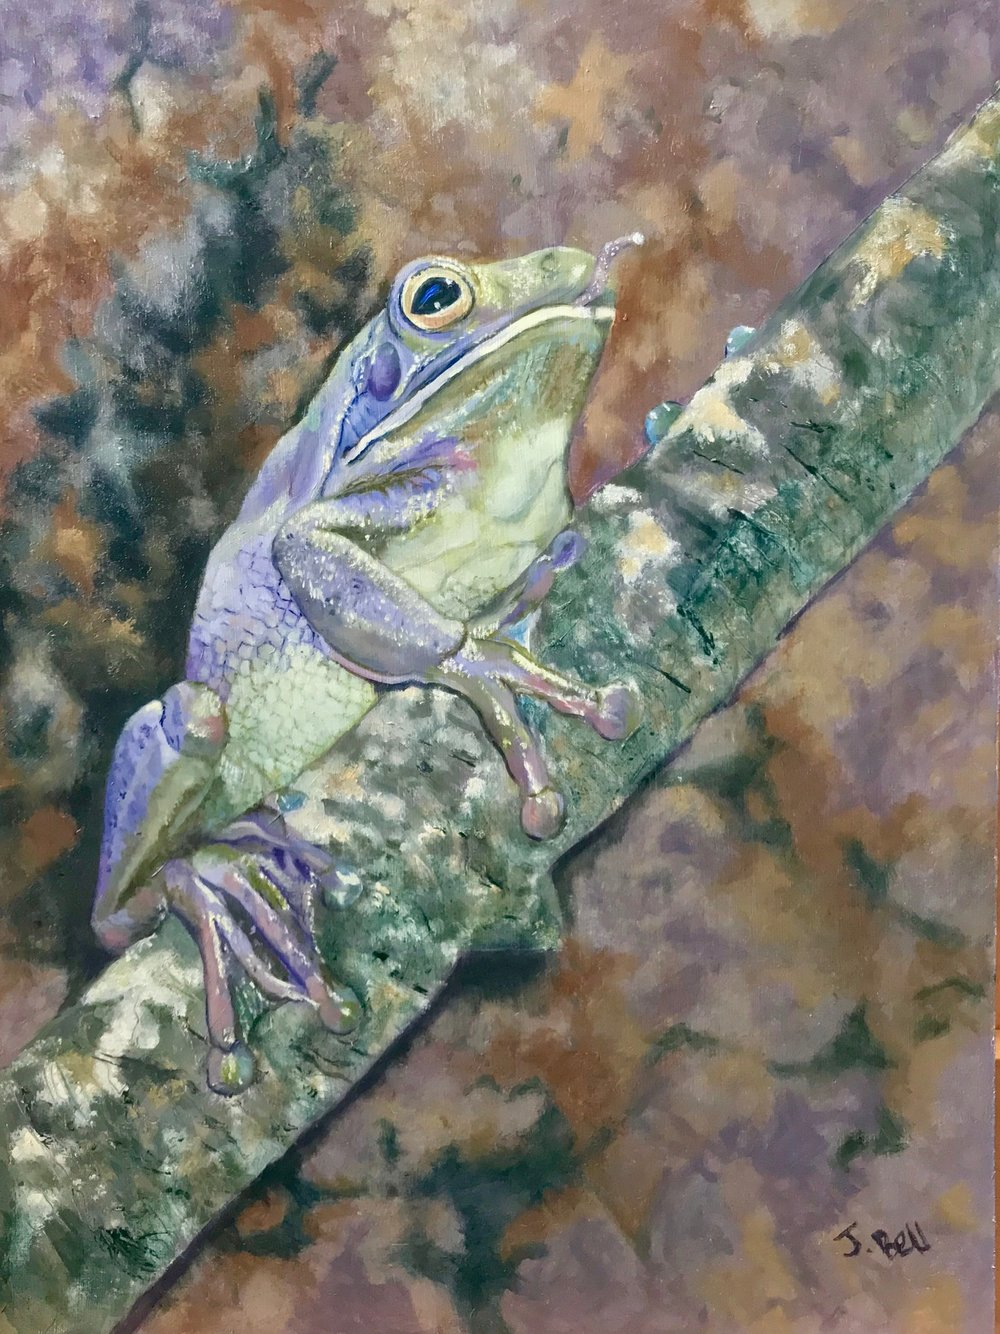 Australian Tree Frog - Jenine Bell - Watercolour.jpg